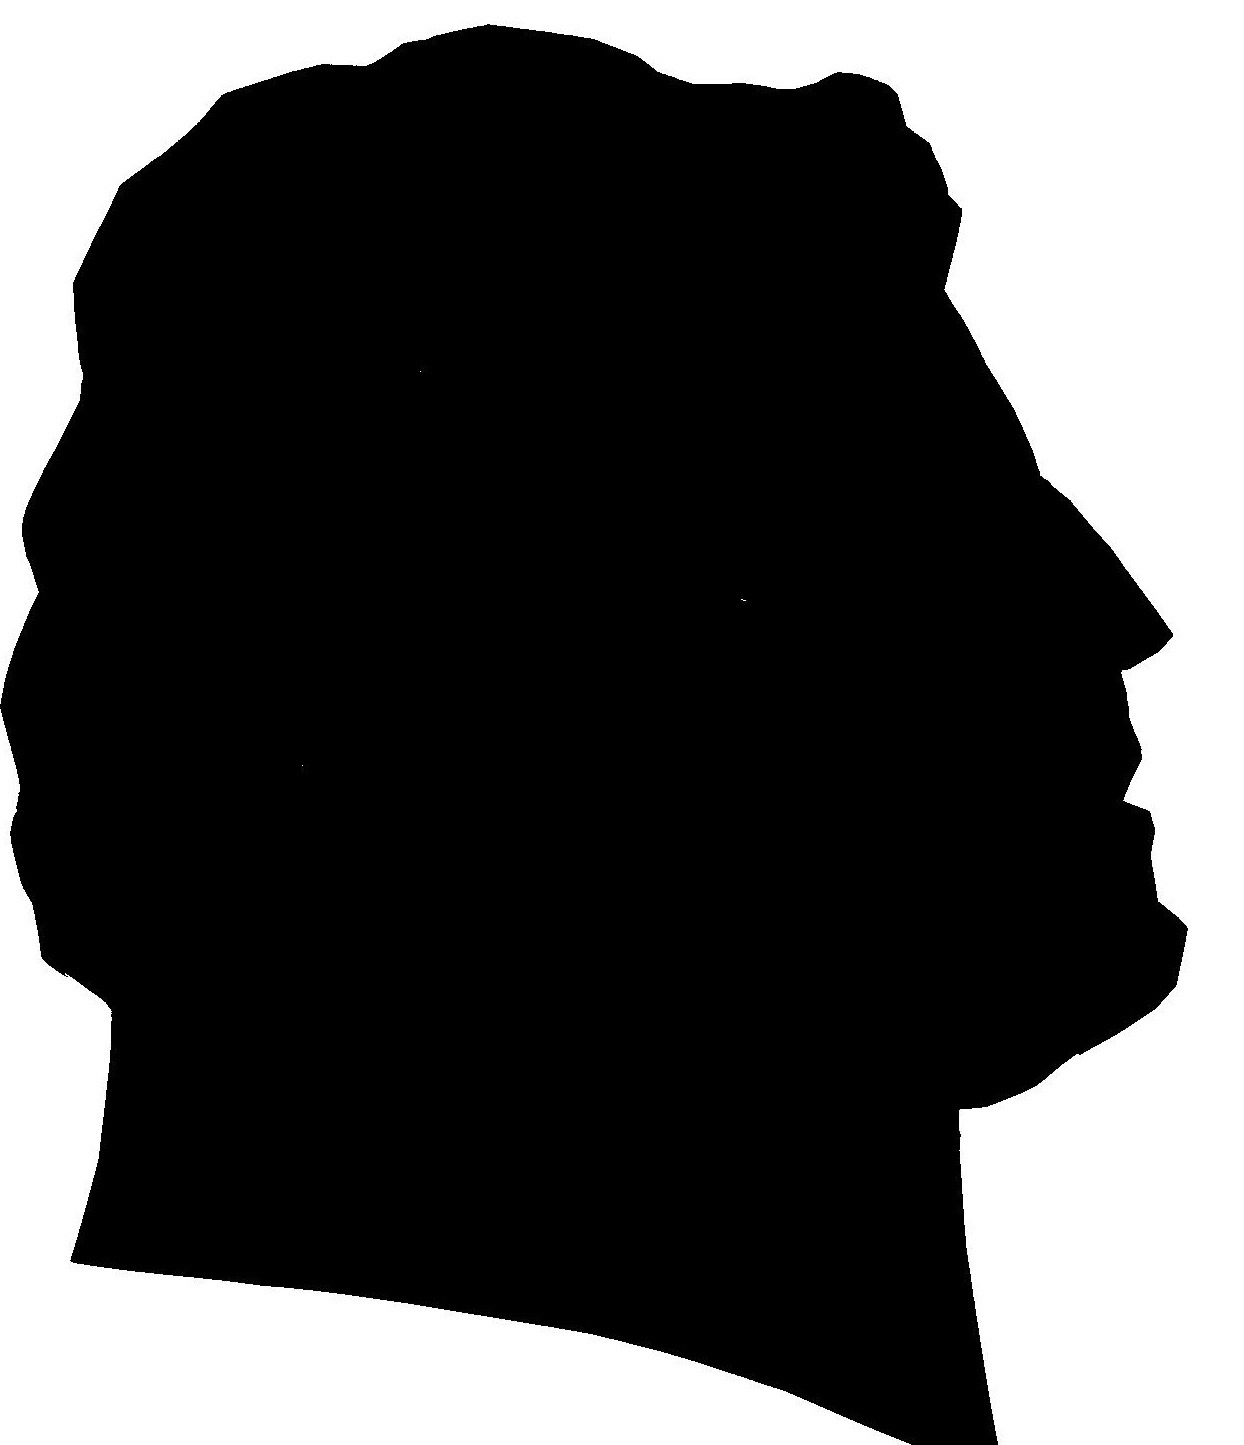 Playing with shadows: silhouette portraits and how to make them.